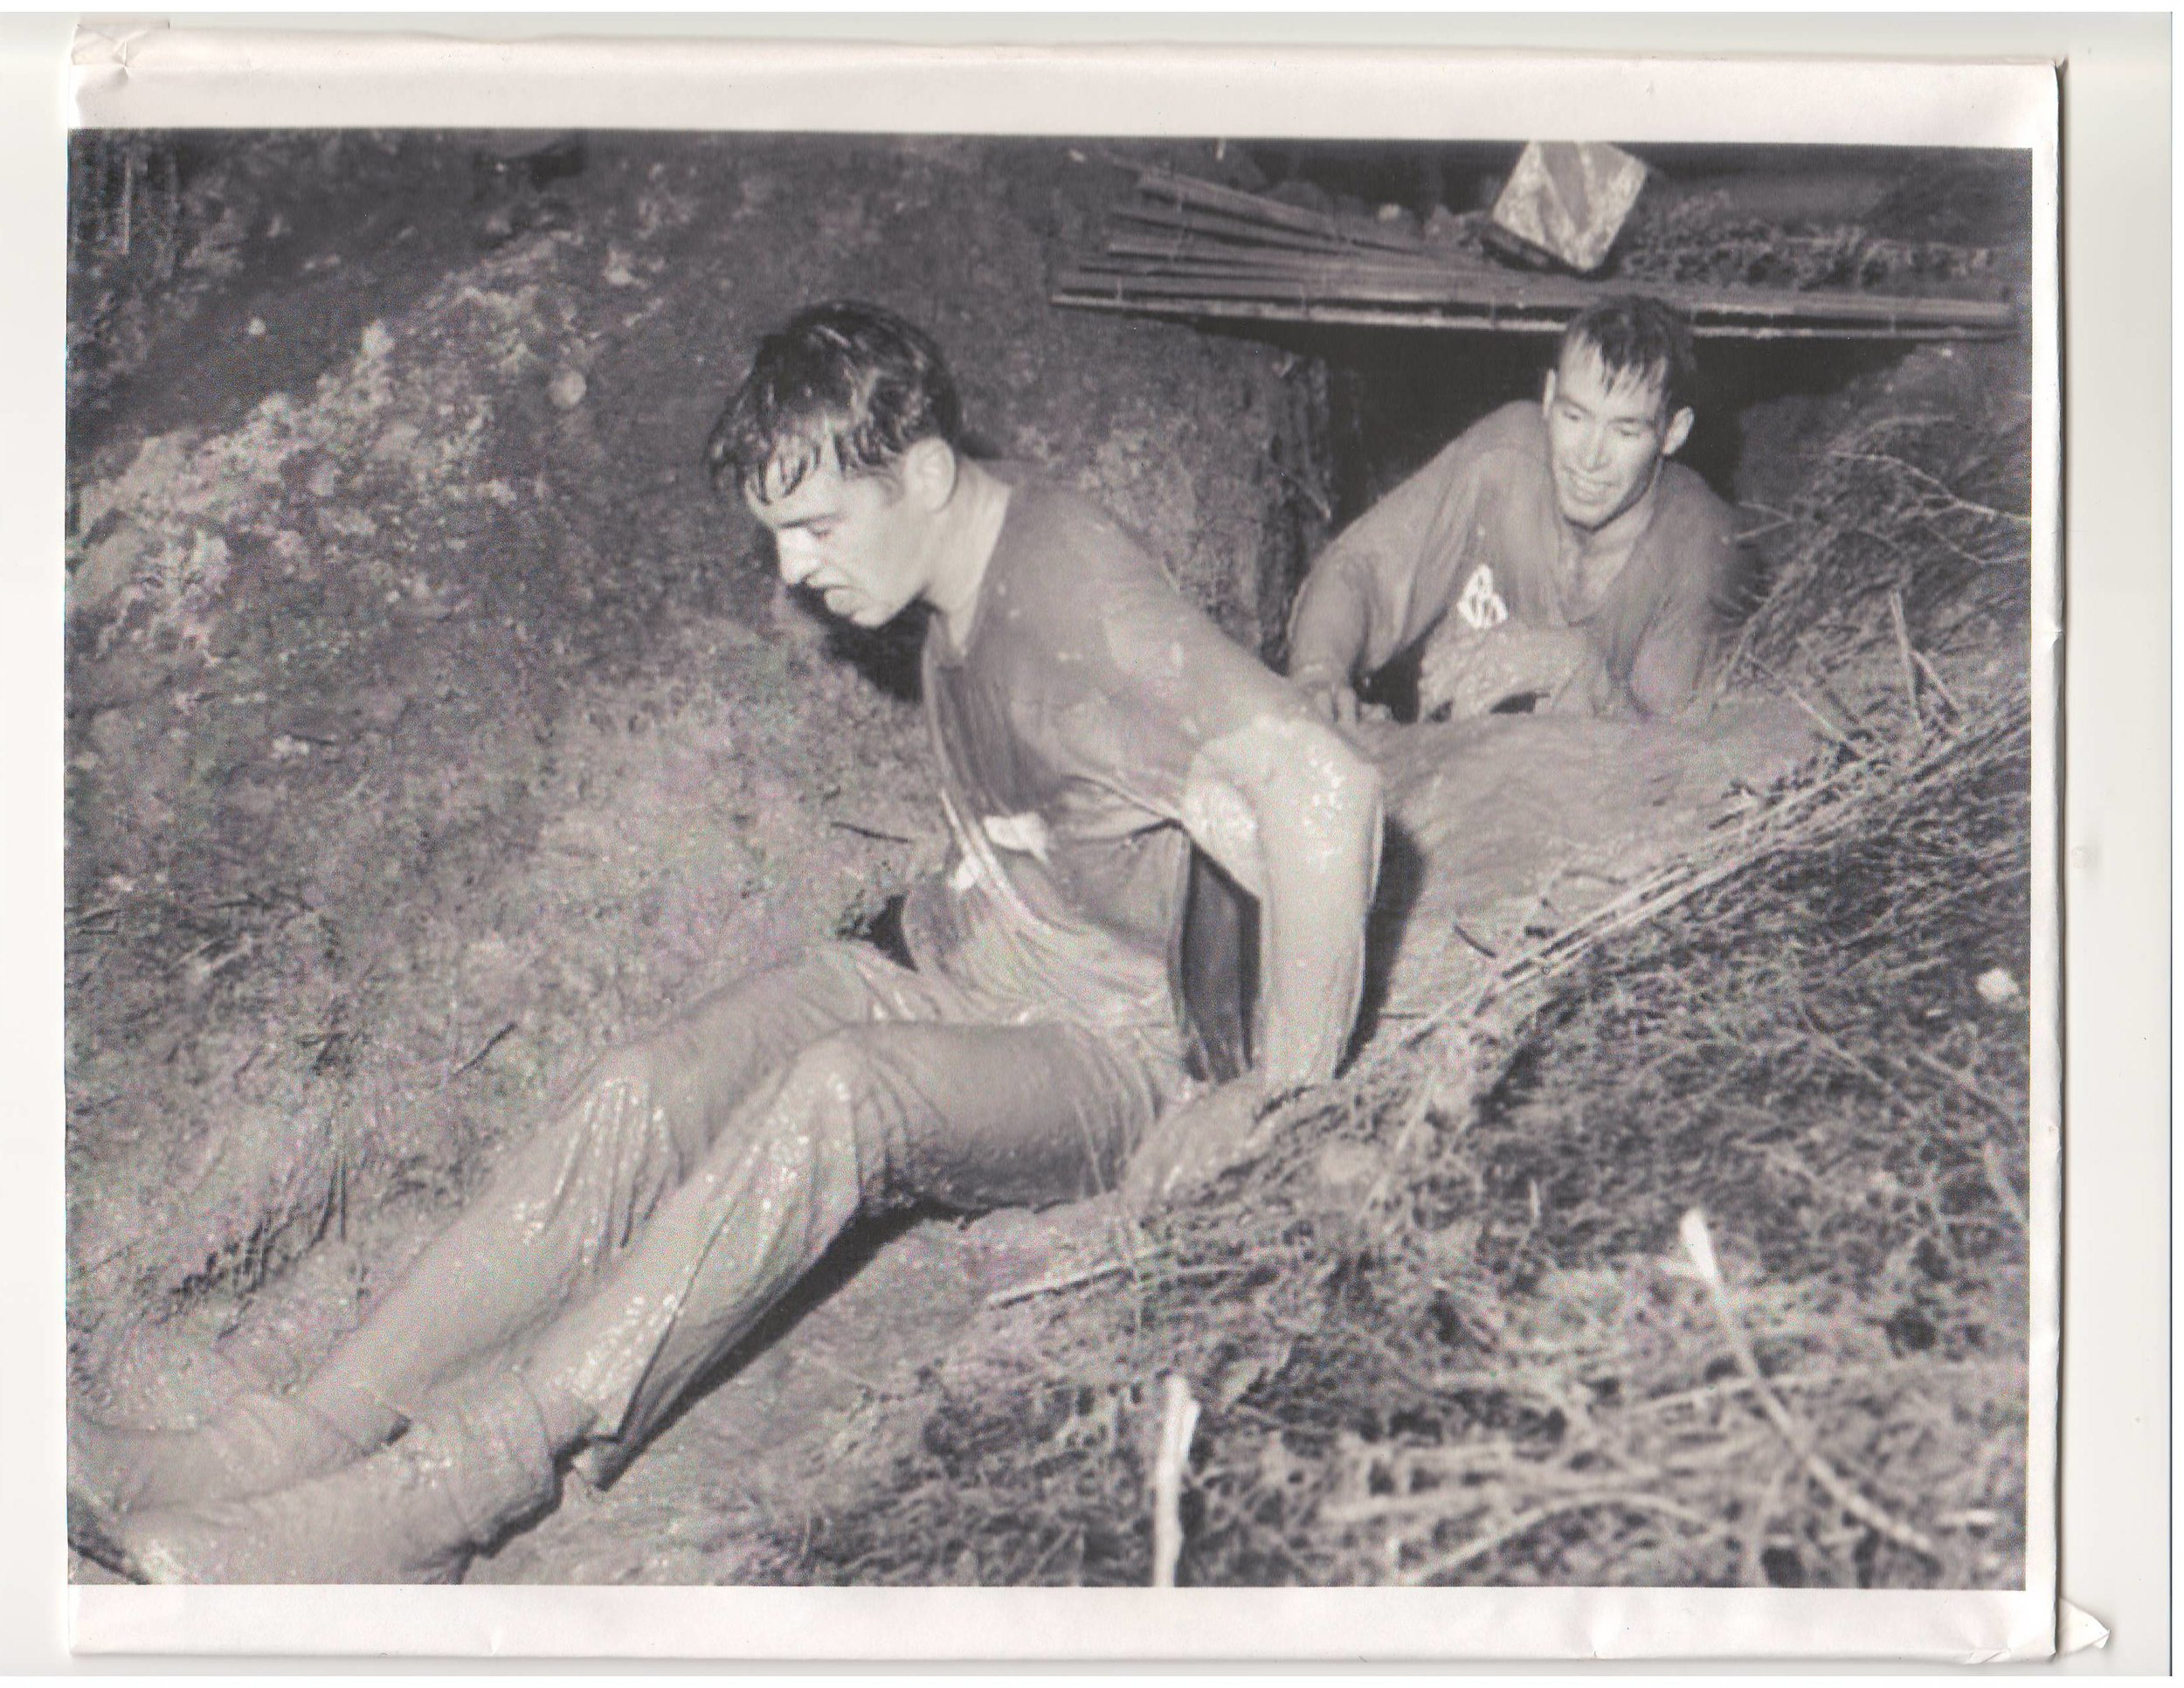 RJ and craig wood during the recruit obstacle race at rmc in 1975